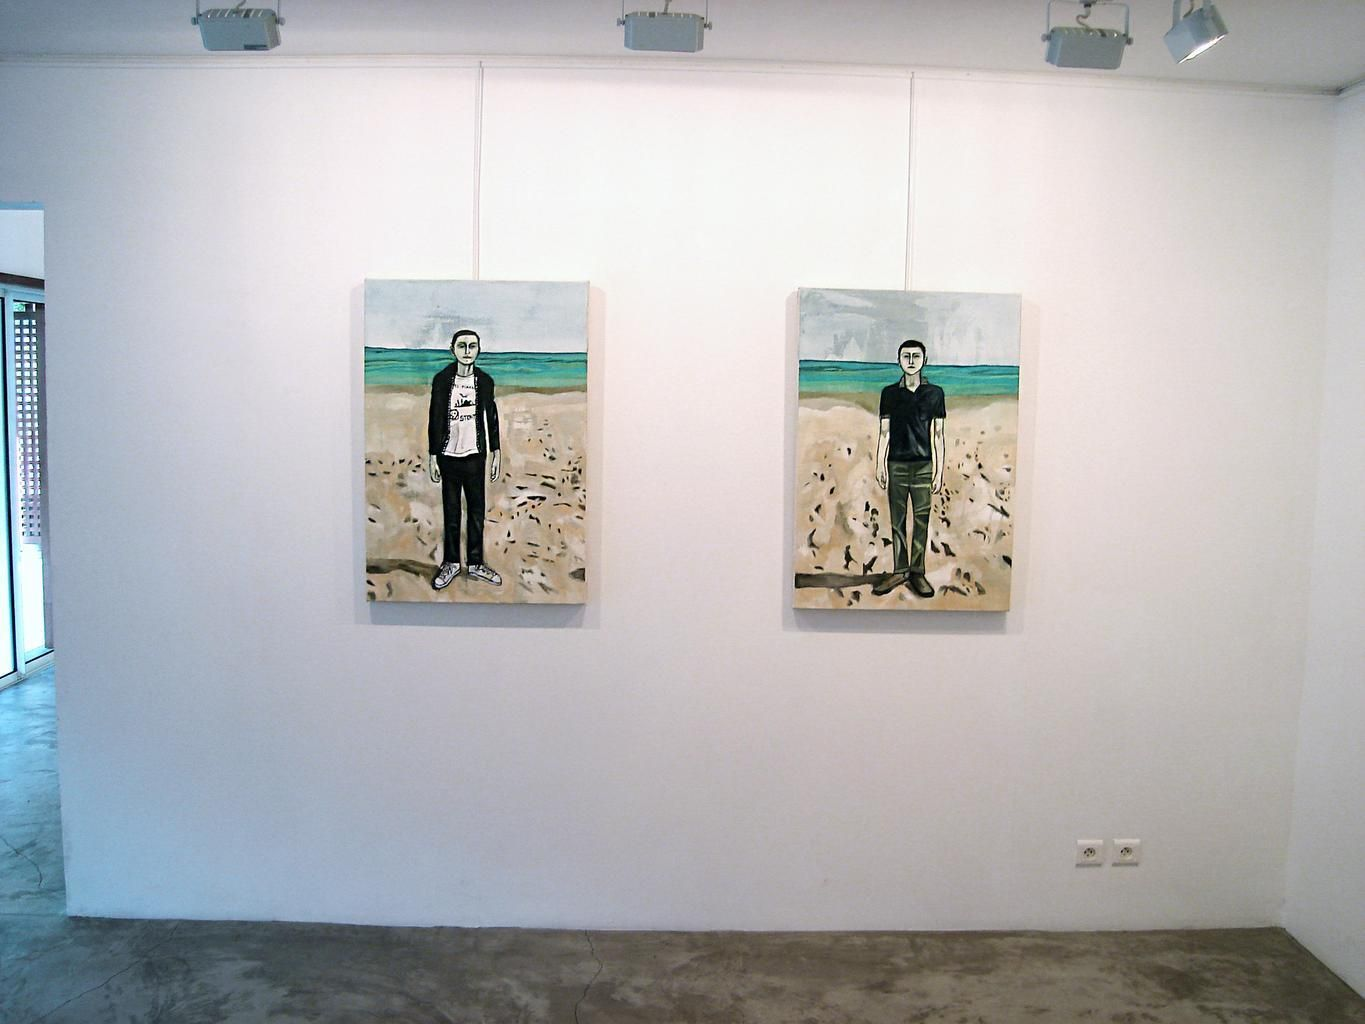 Installation View, Me.di.um, St. Bathelemy, 2006